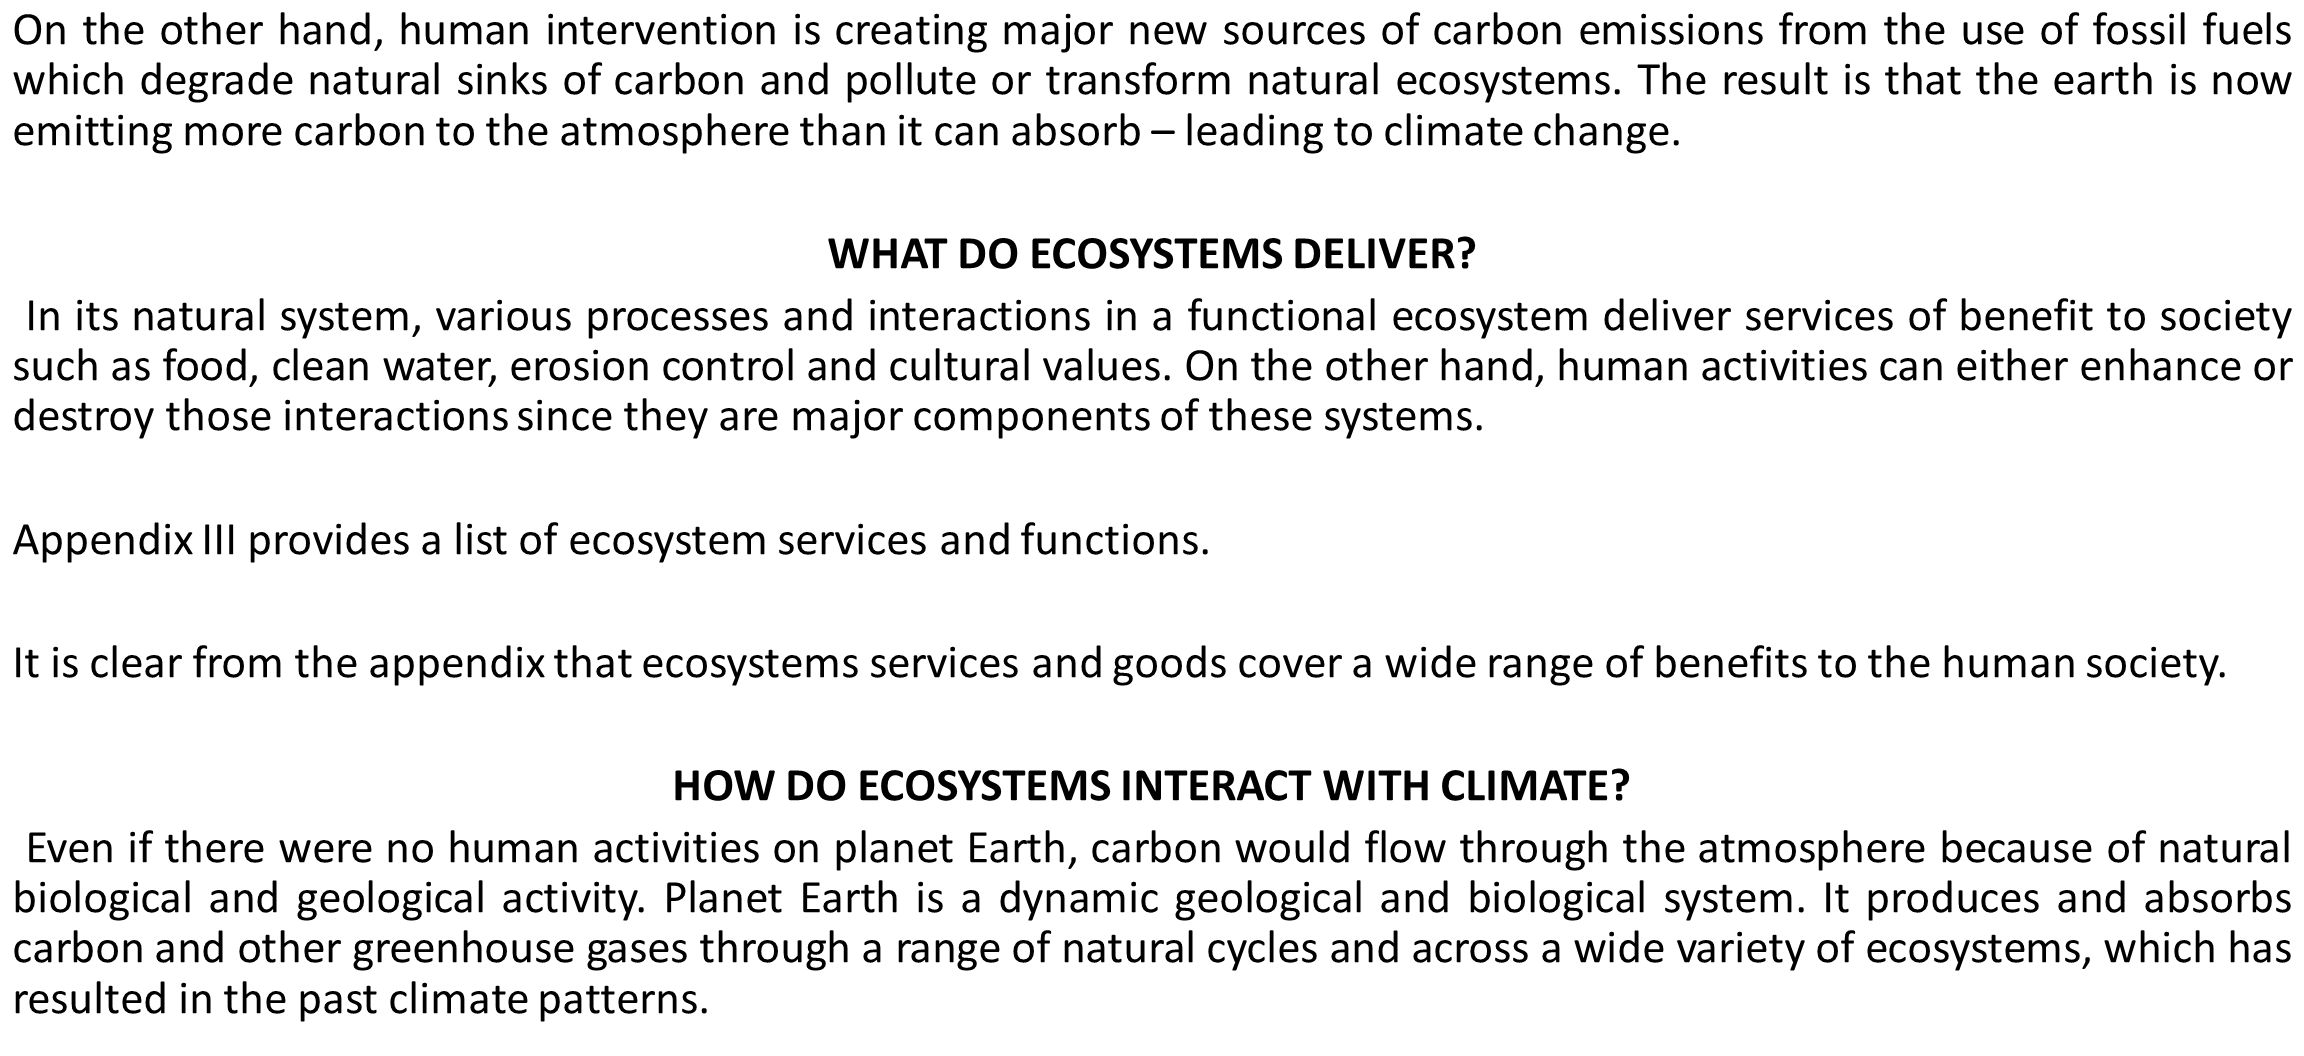 WHAT DO ECOSYSTEMS DELIVER